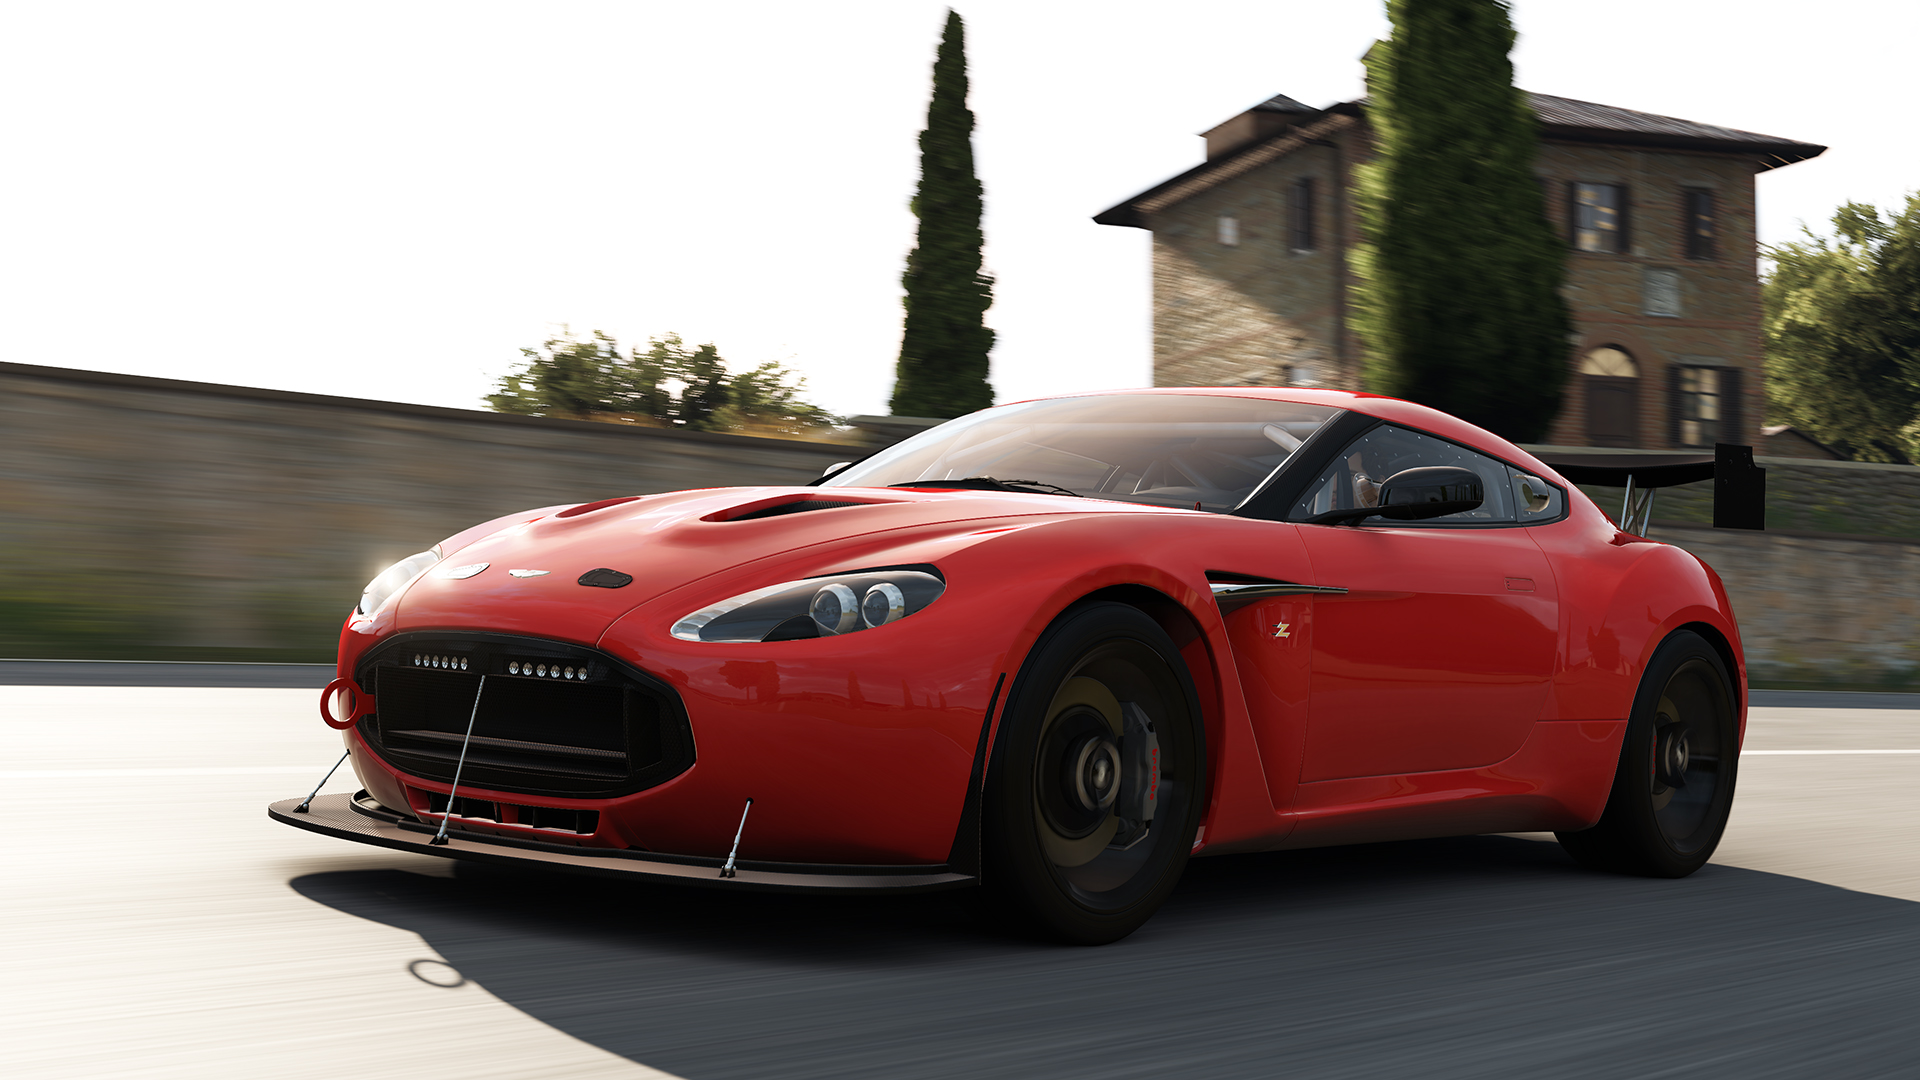 The Aston Martin Zagato